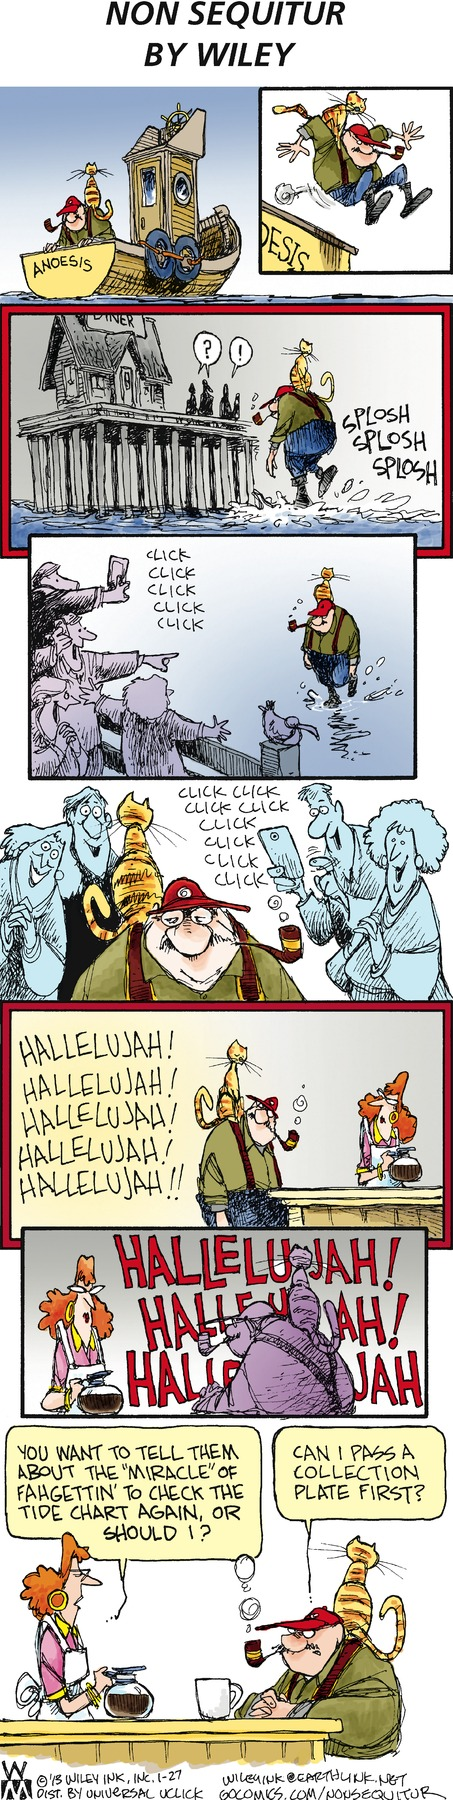 Non Sequitur Comic Strip for January 27, 2013